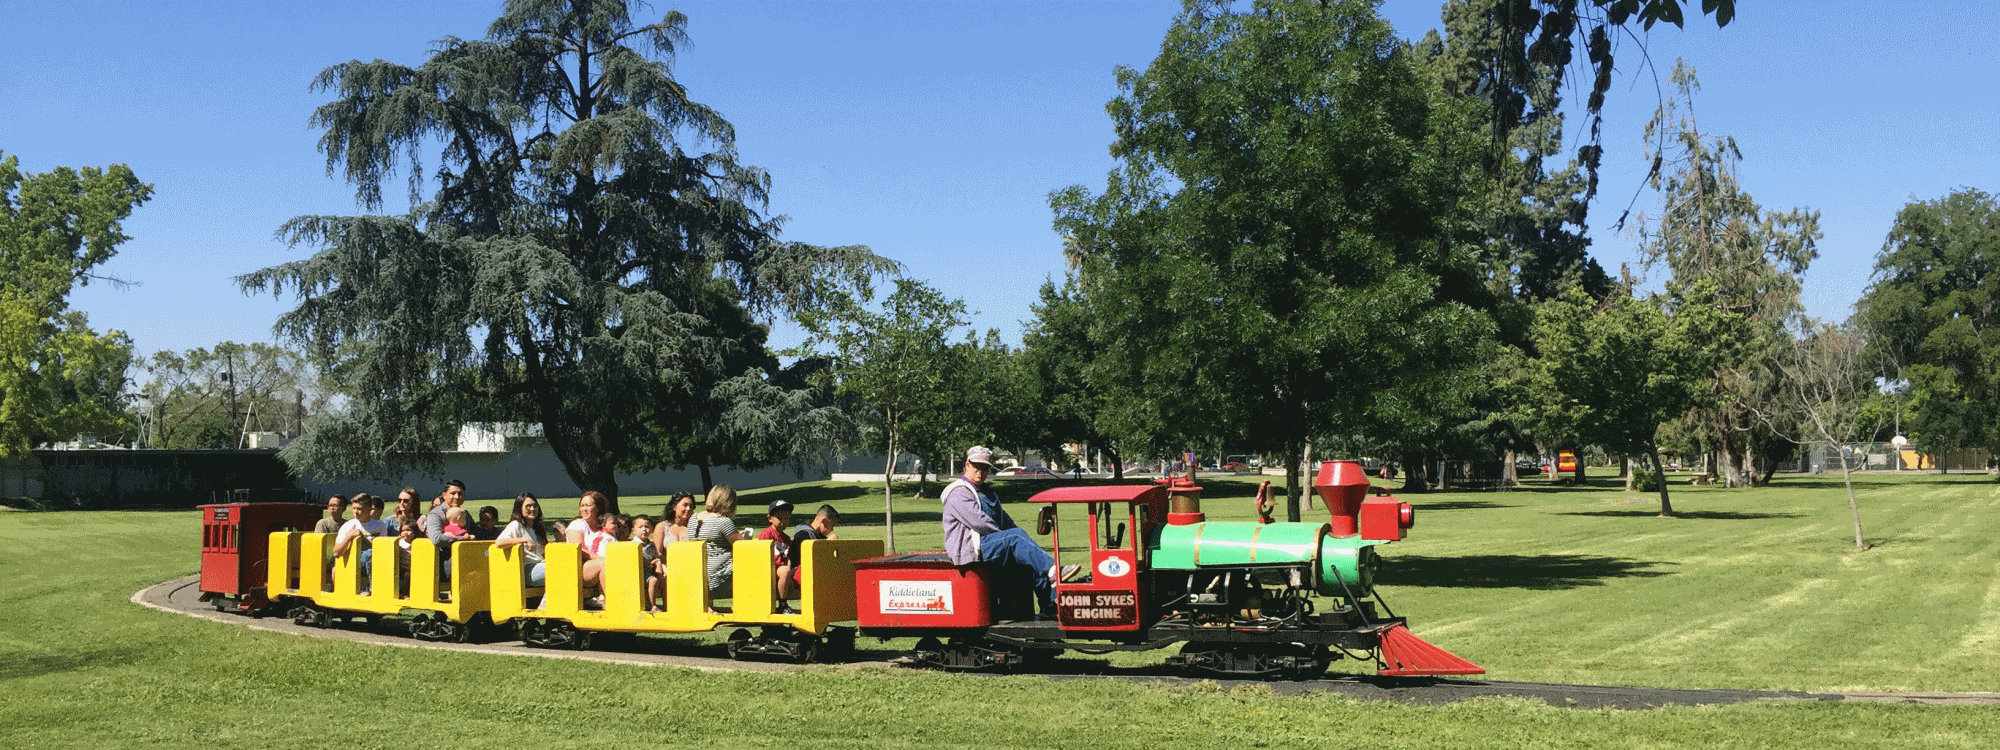 kiddieland train